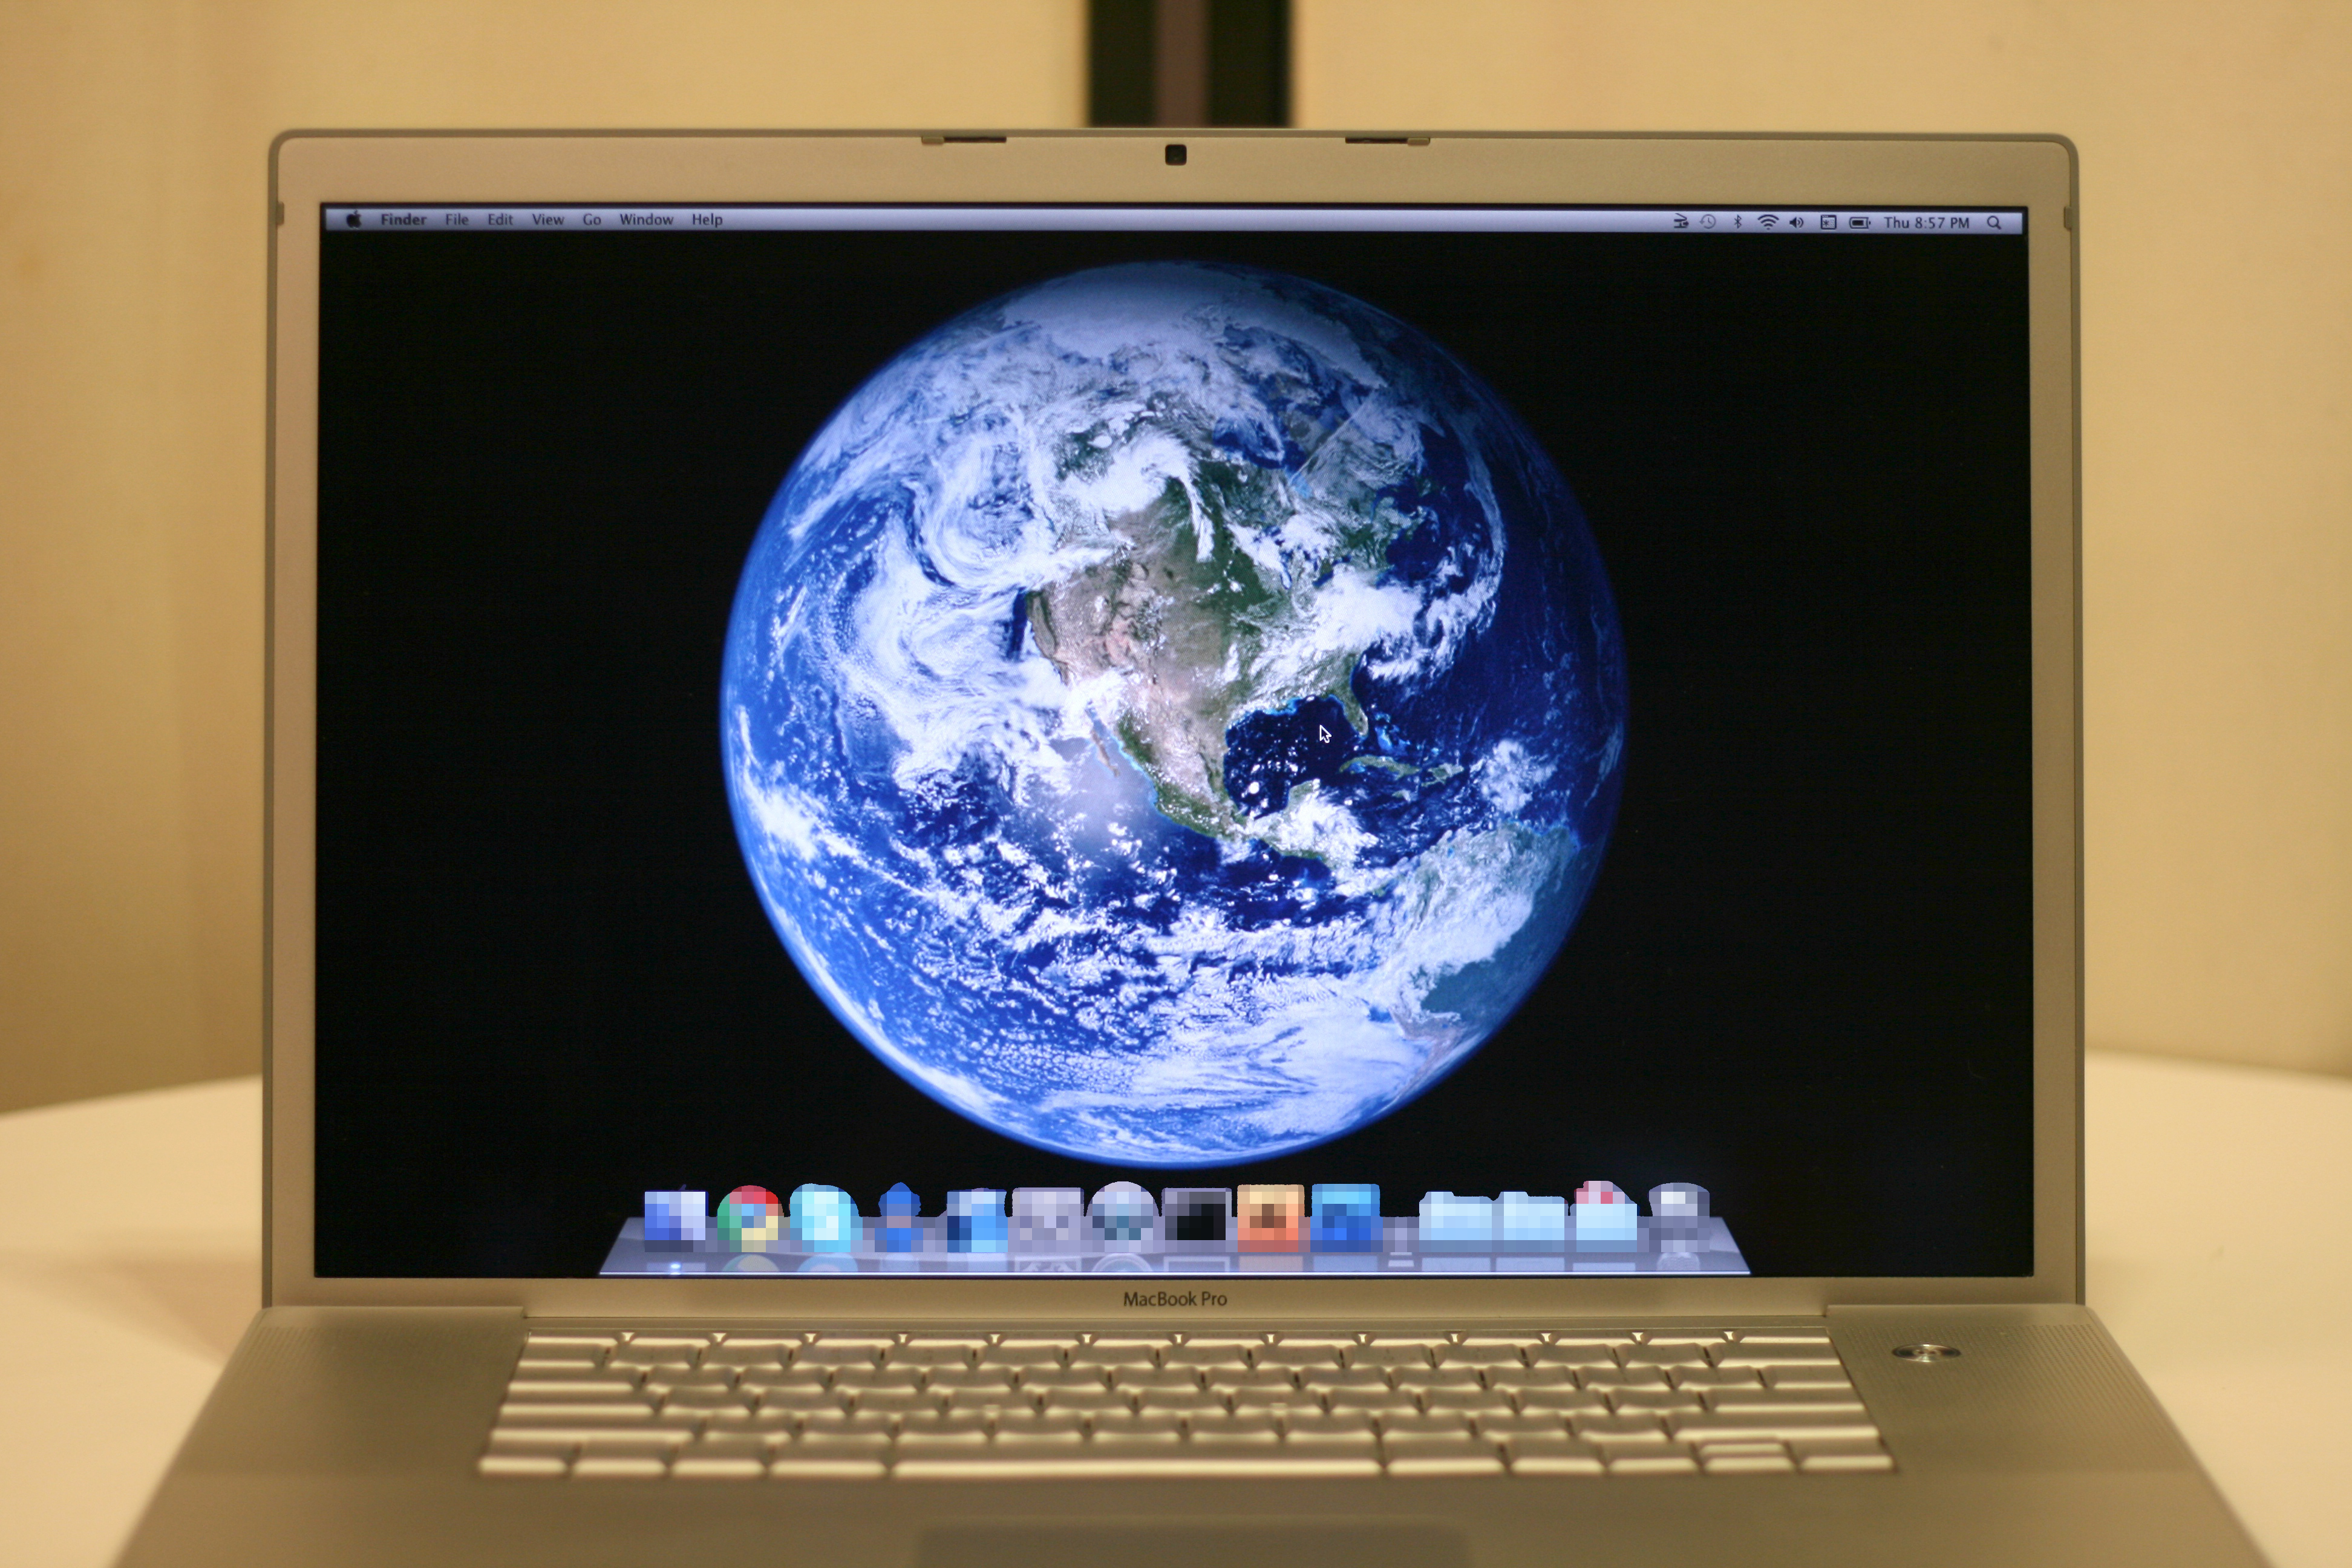 File2010 01 21 MacBook Pro Mac OS X Snow Leopard with Earth 3888x2592